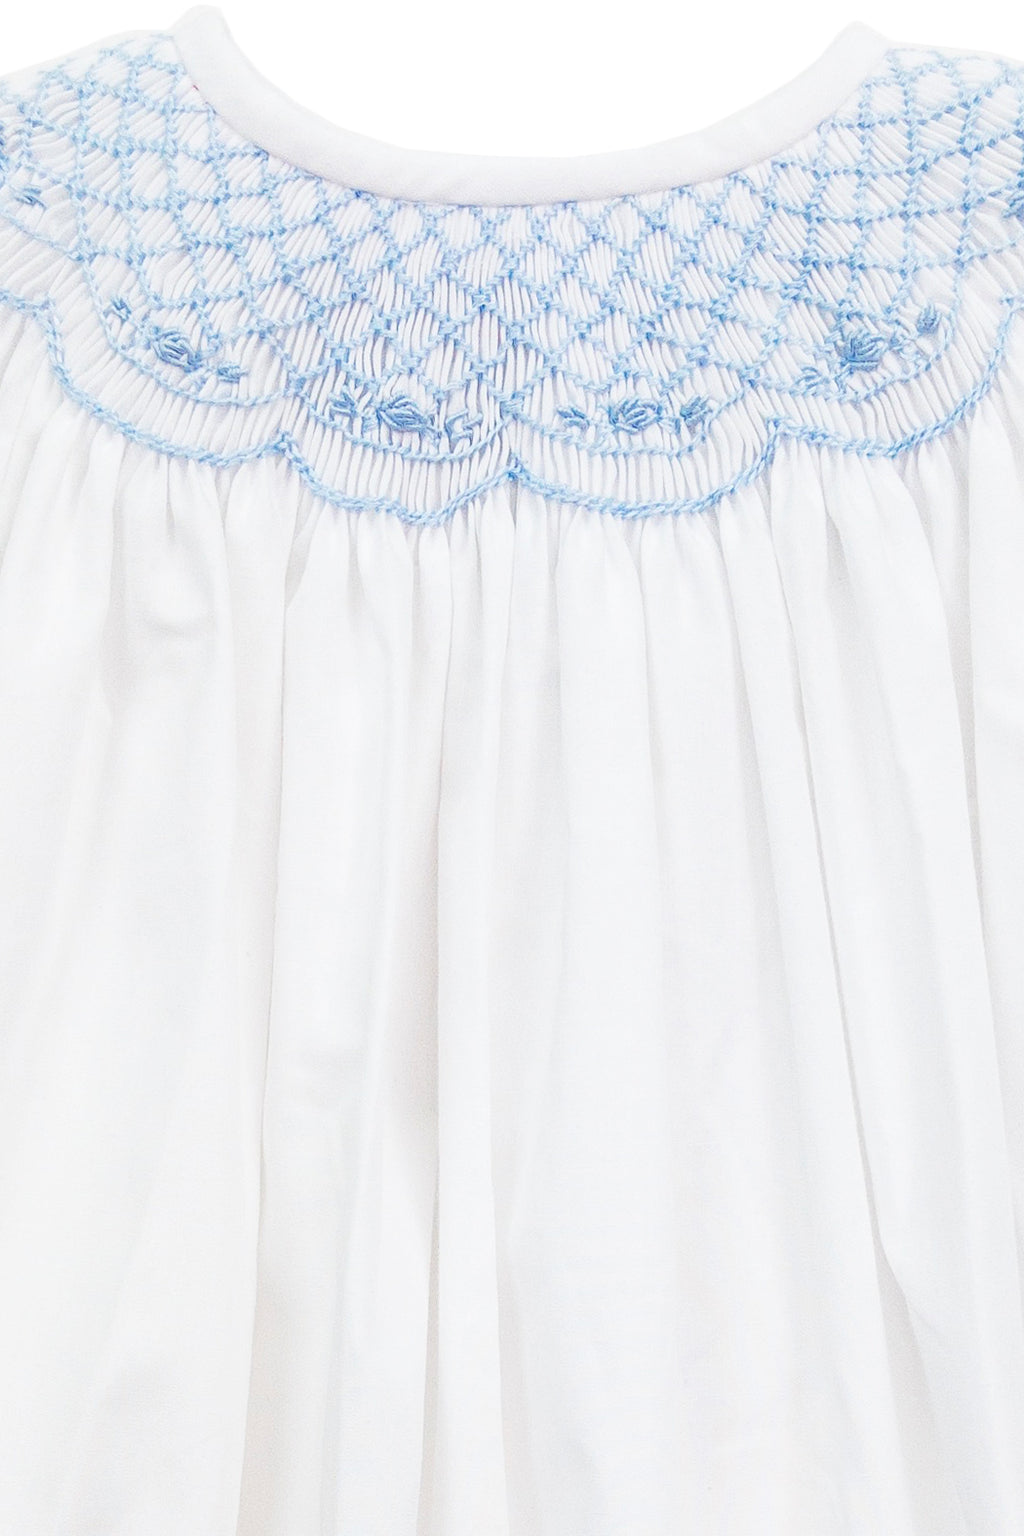 Baby Blue Smocked White Bishop Dress